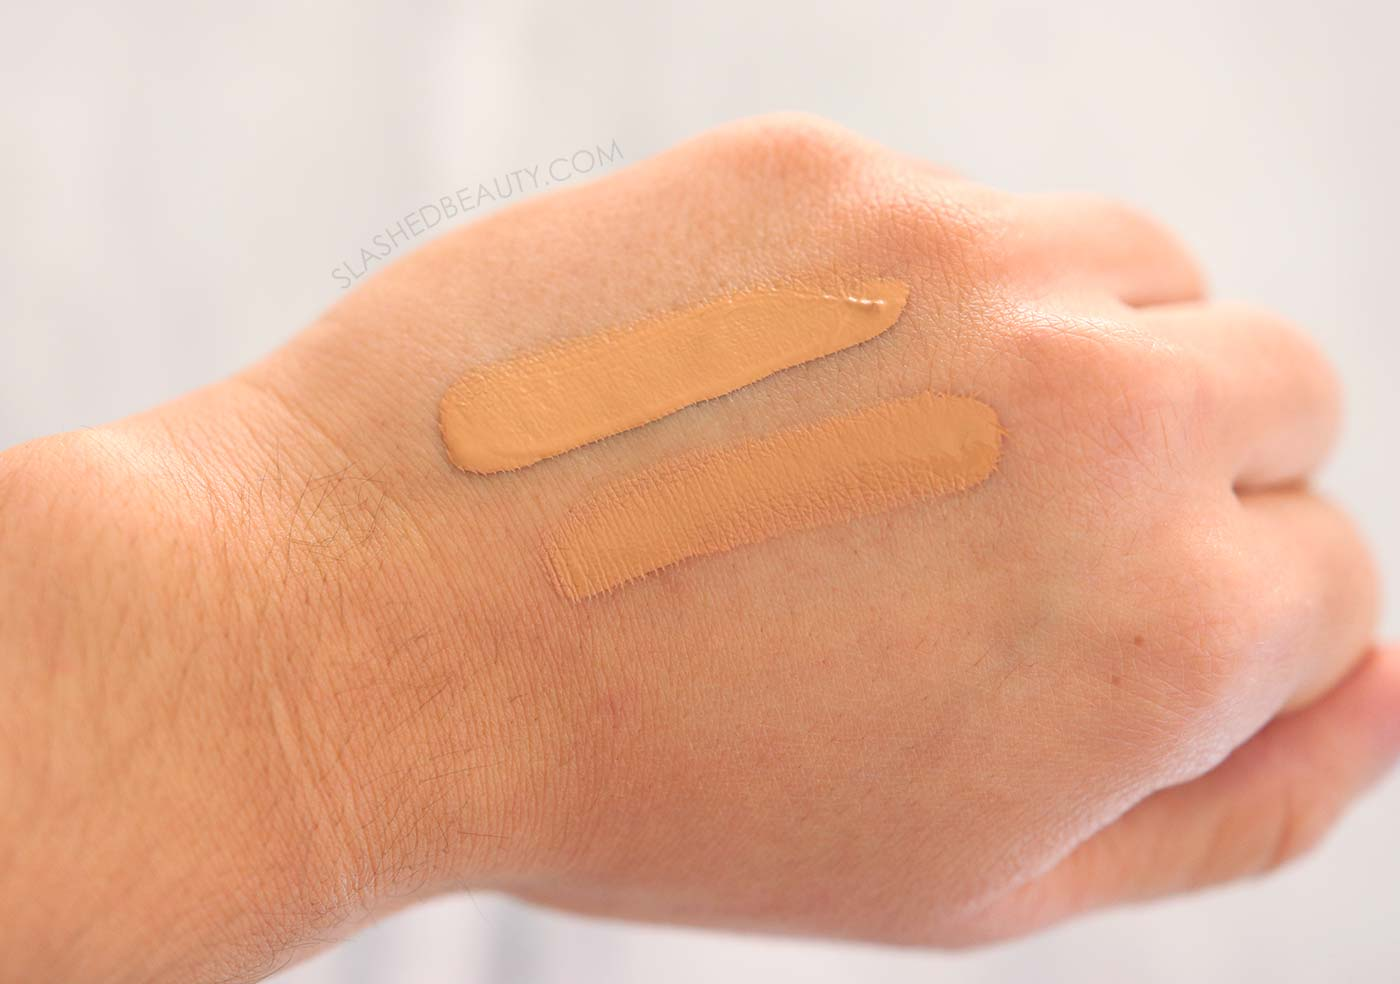 REVIEW: L'Oreal Skin Paradise Water Infused Tinted Moisturizer for Combo Skin   Does it oxidize?   Slashed Beauty